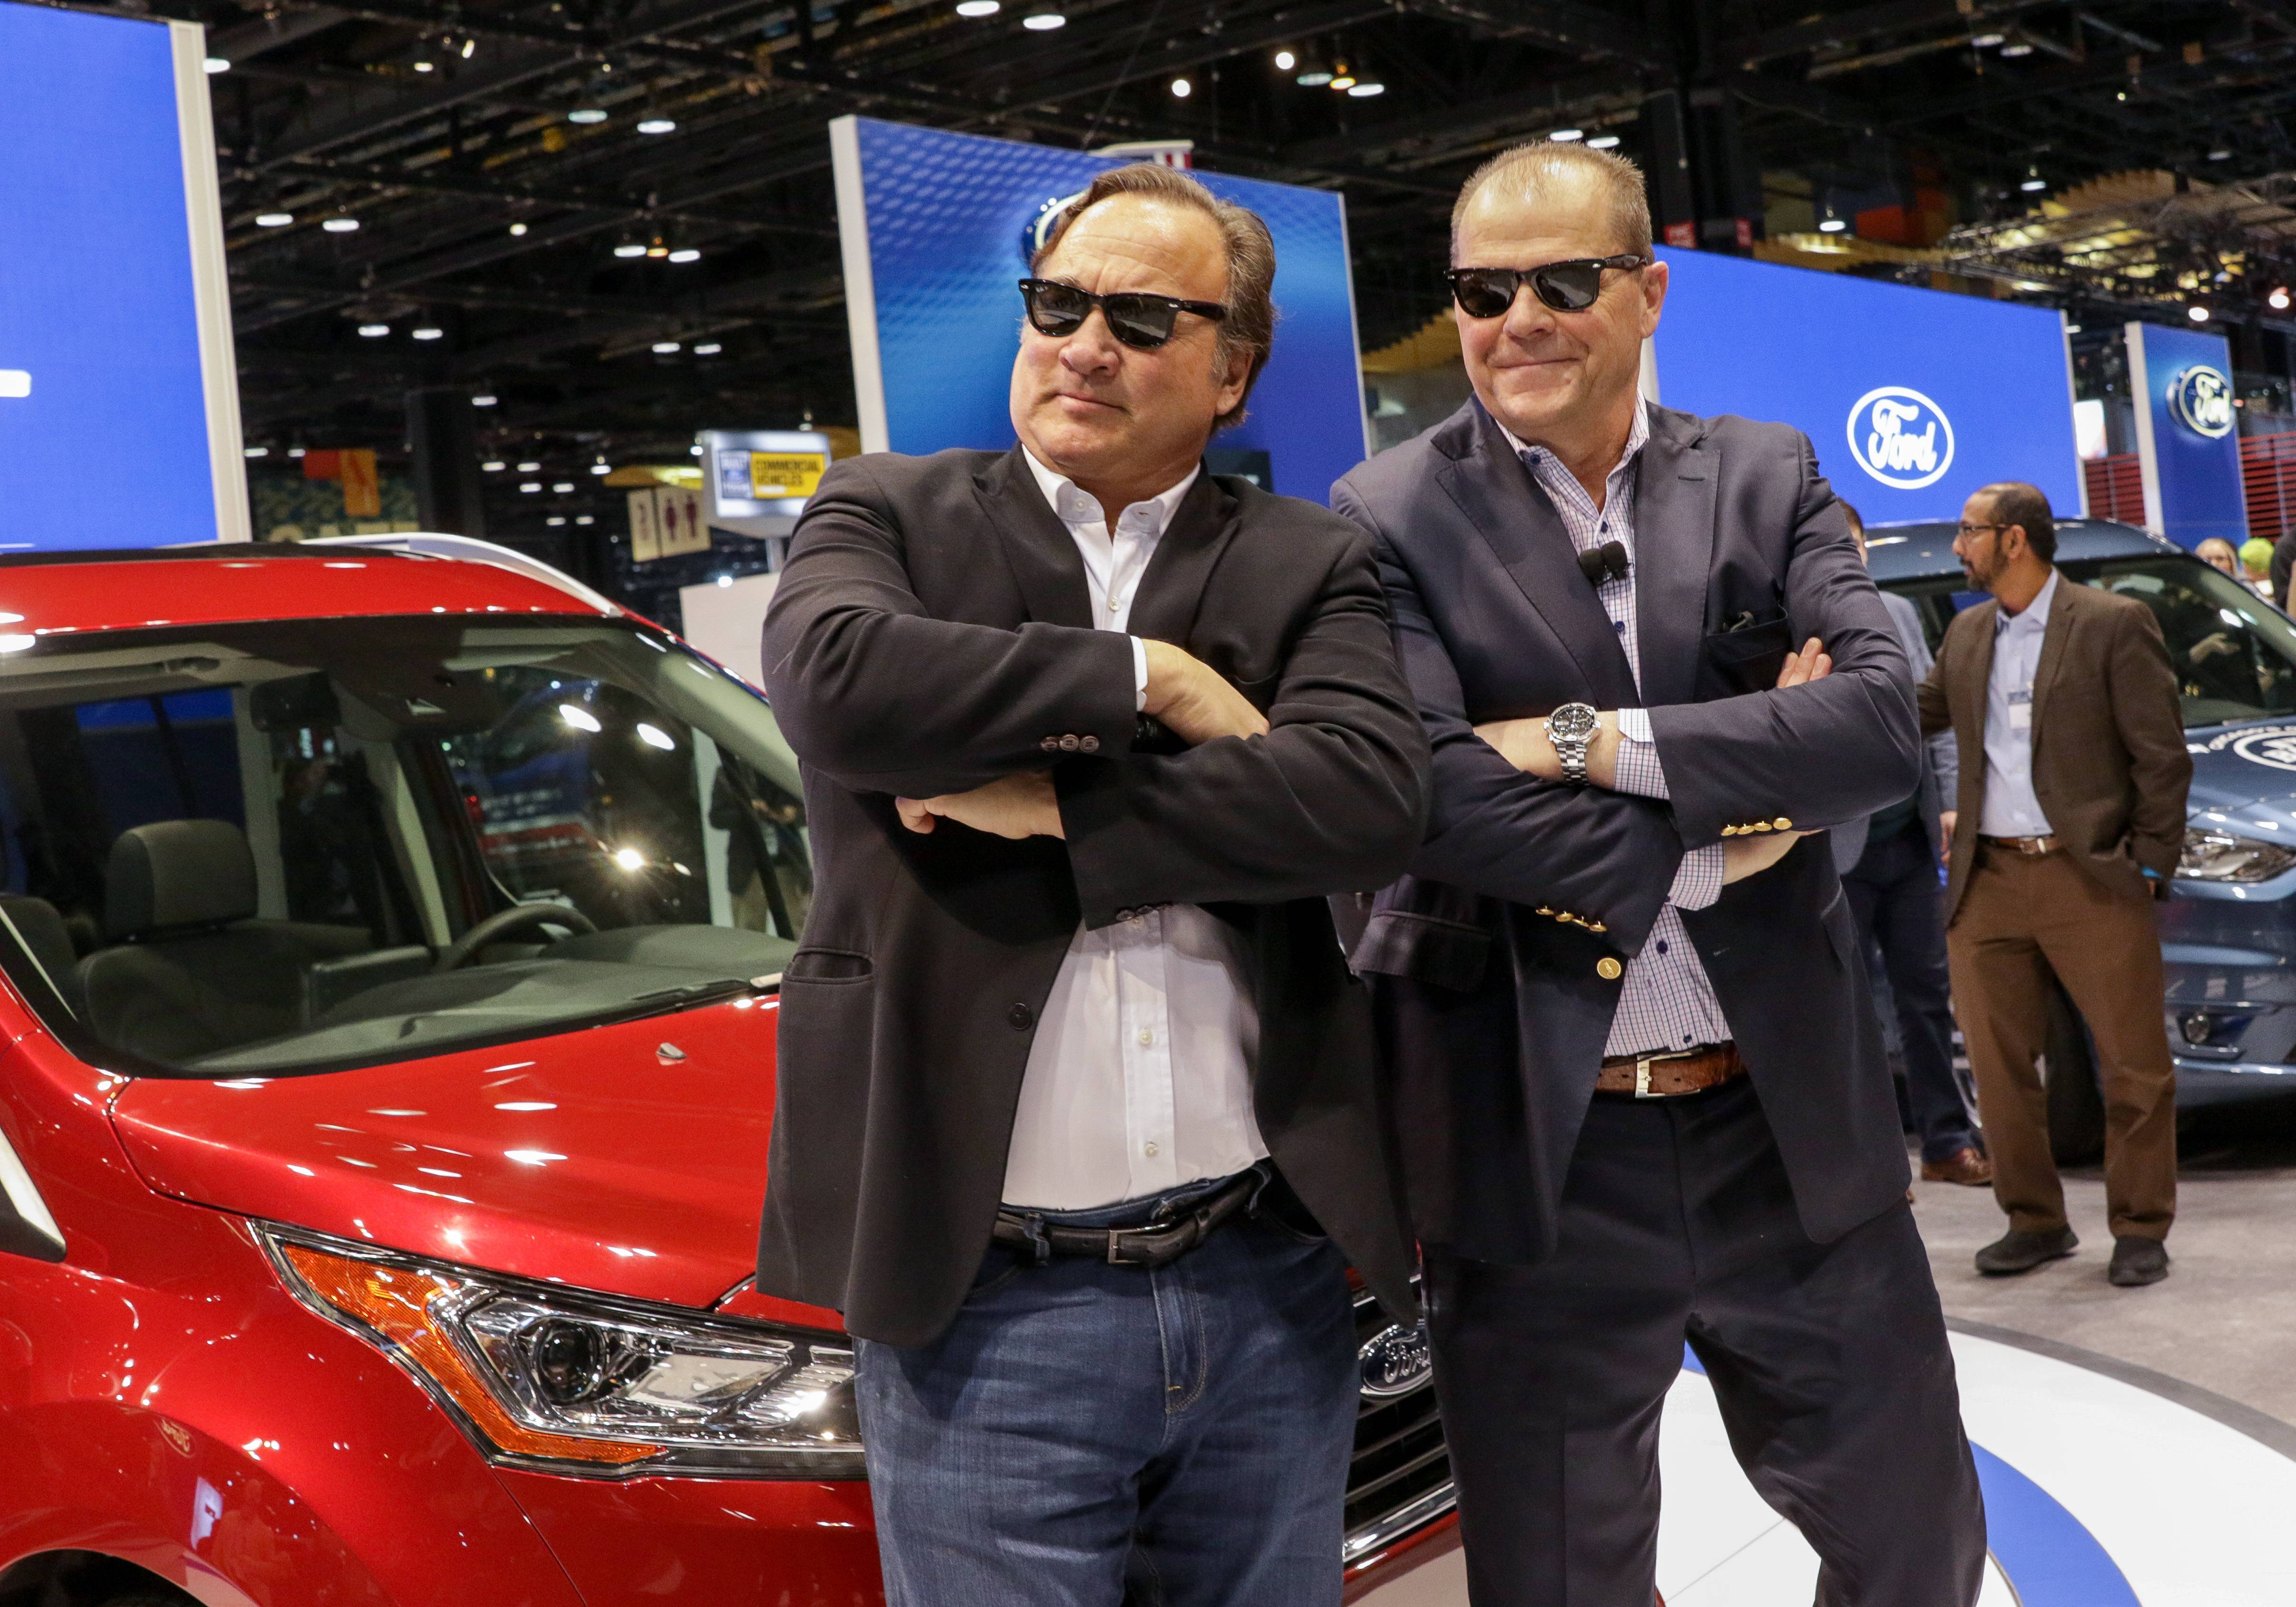 Chicago Auto Show roars into town with electrics, dream cars and more